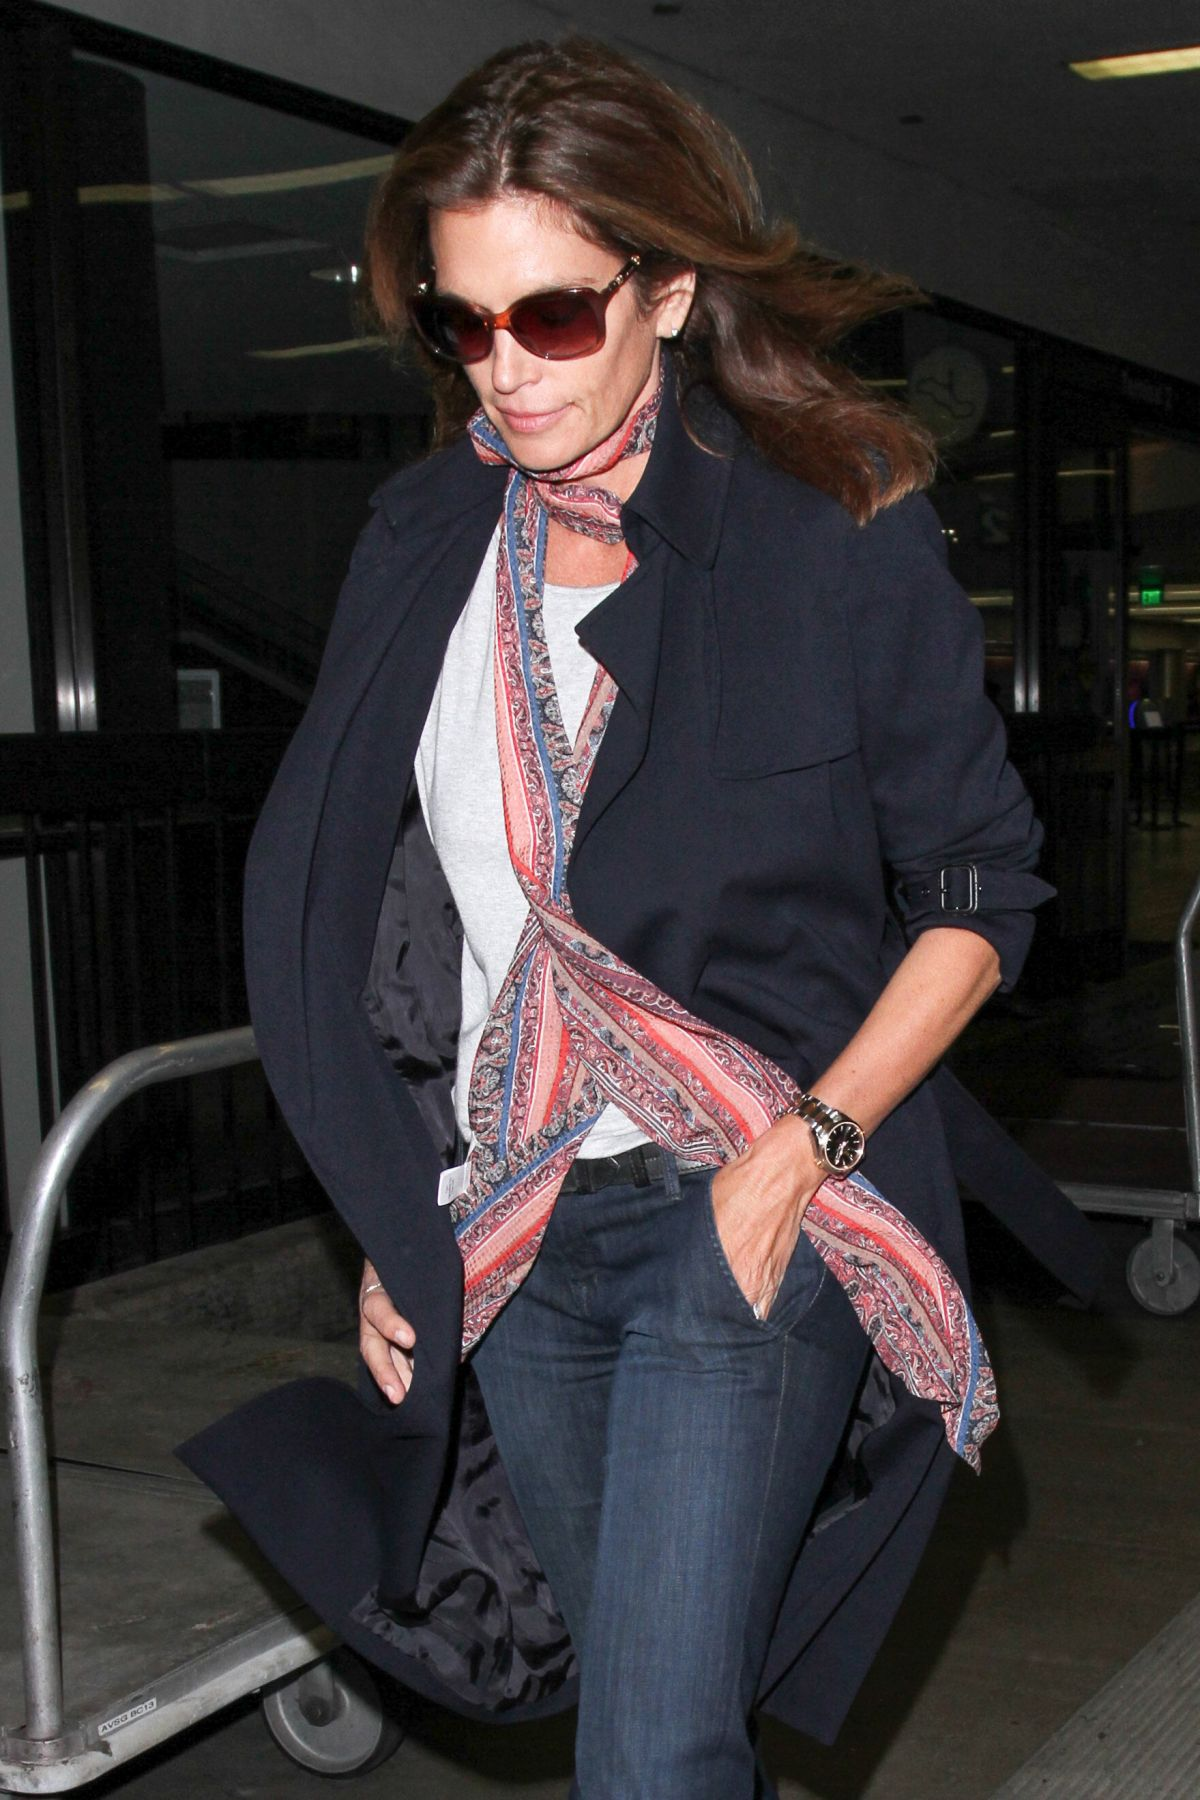 CINDY CRAWFORD at Los Angeles International Airport 04/21/2016